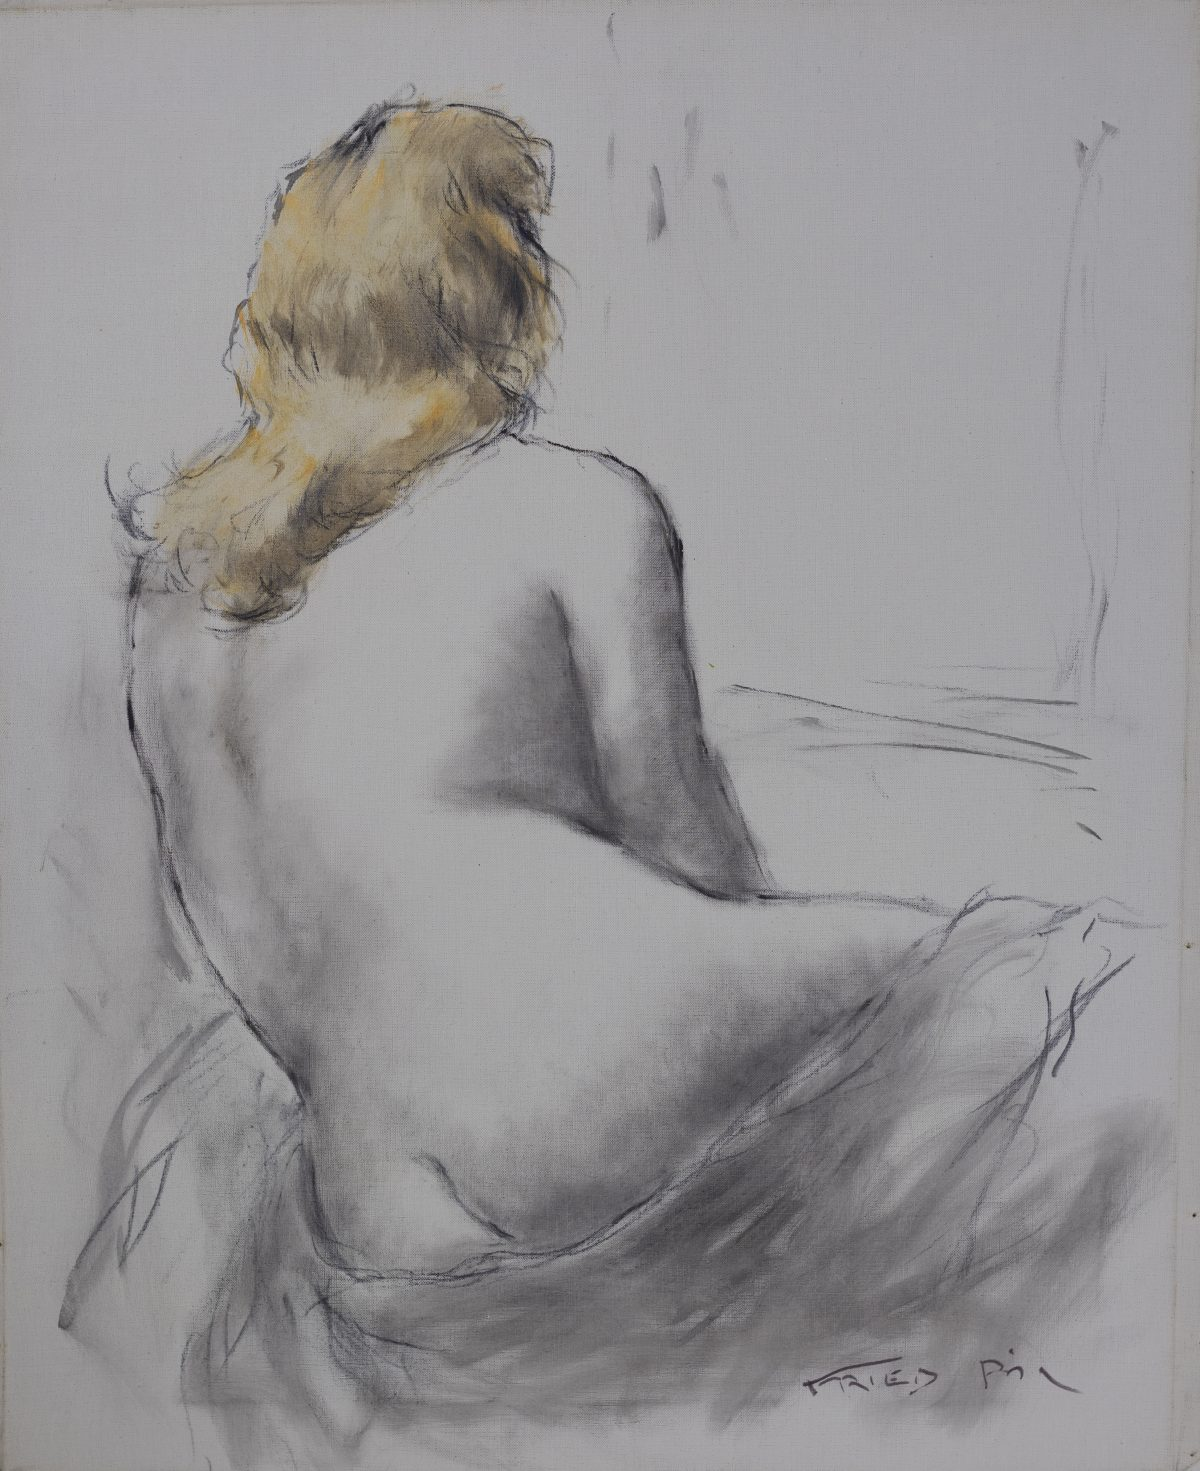 Pál Fried - Untitled (Nude, Black and White IV)